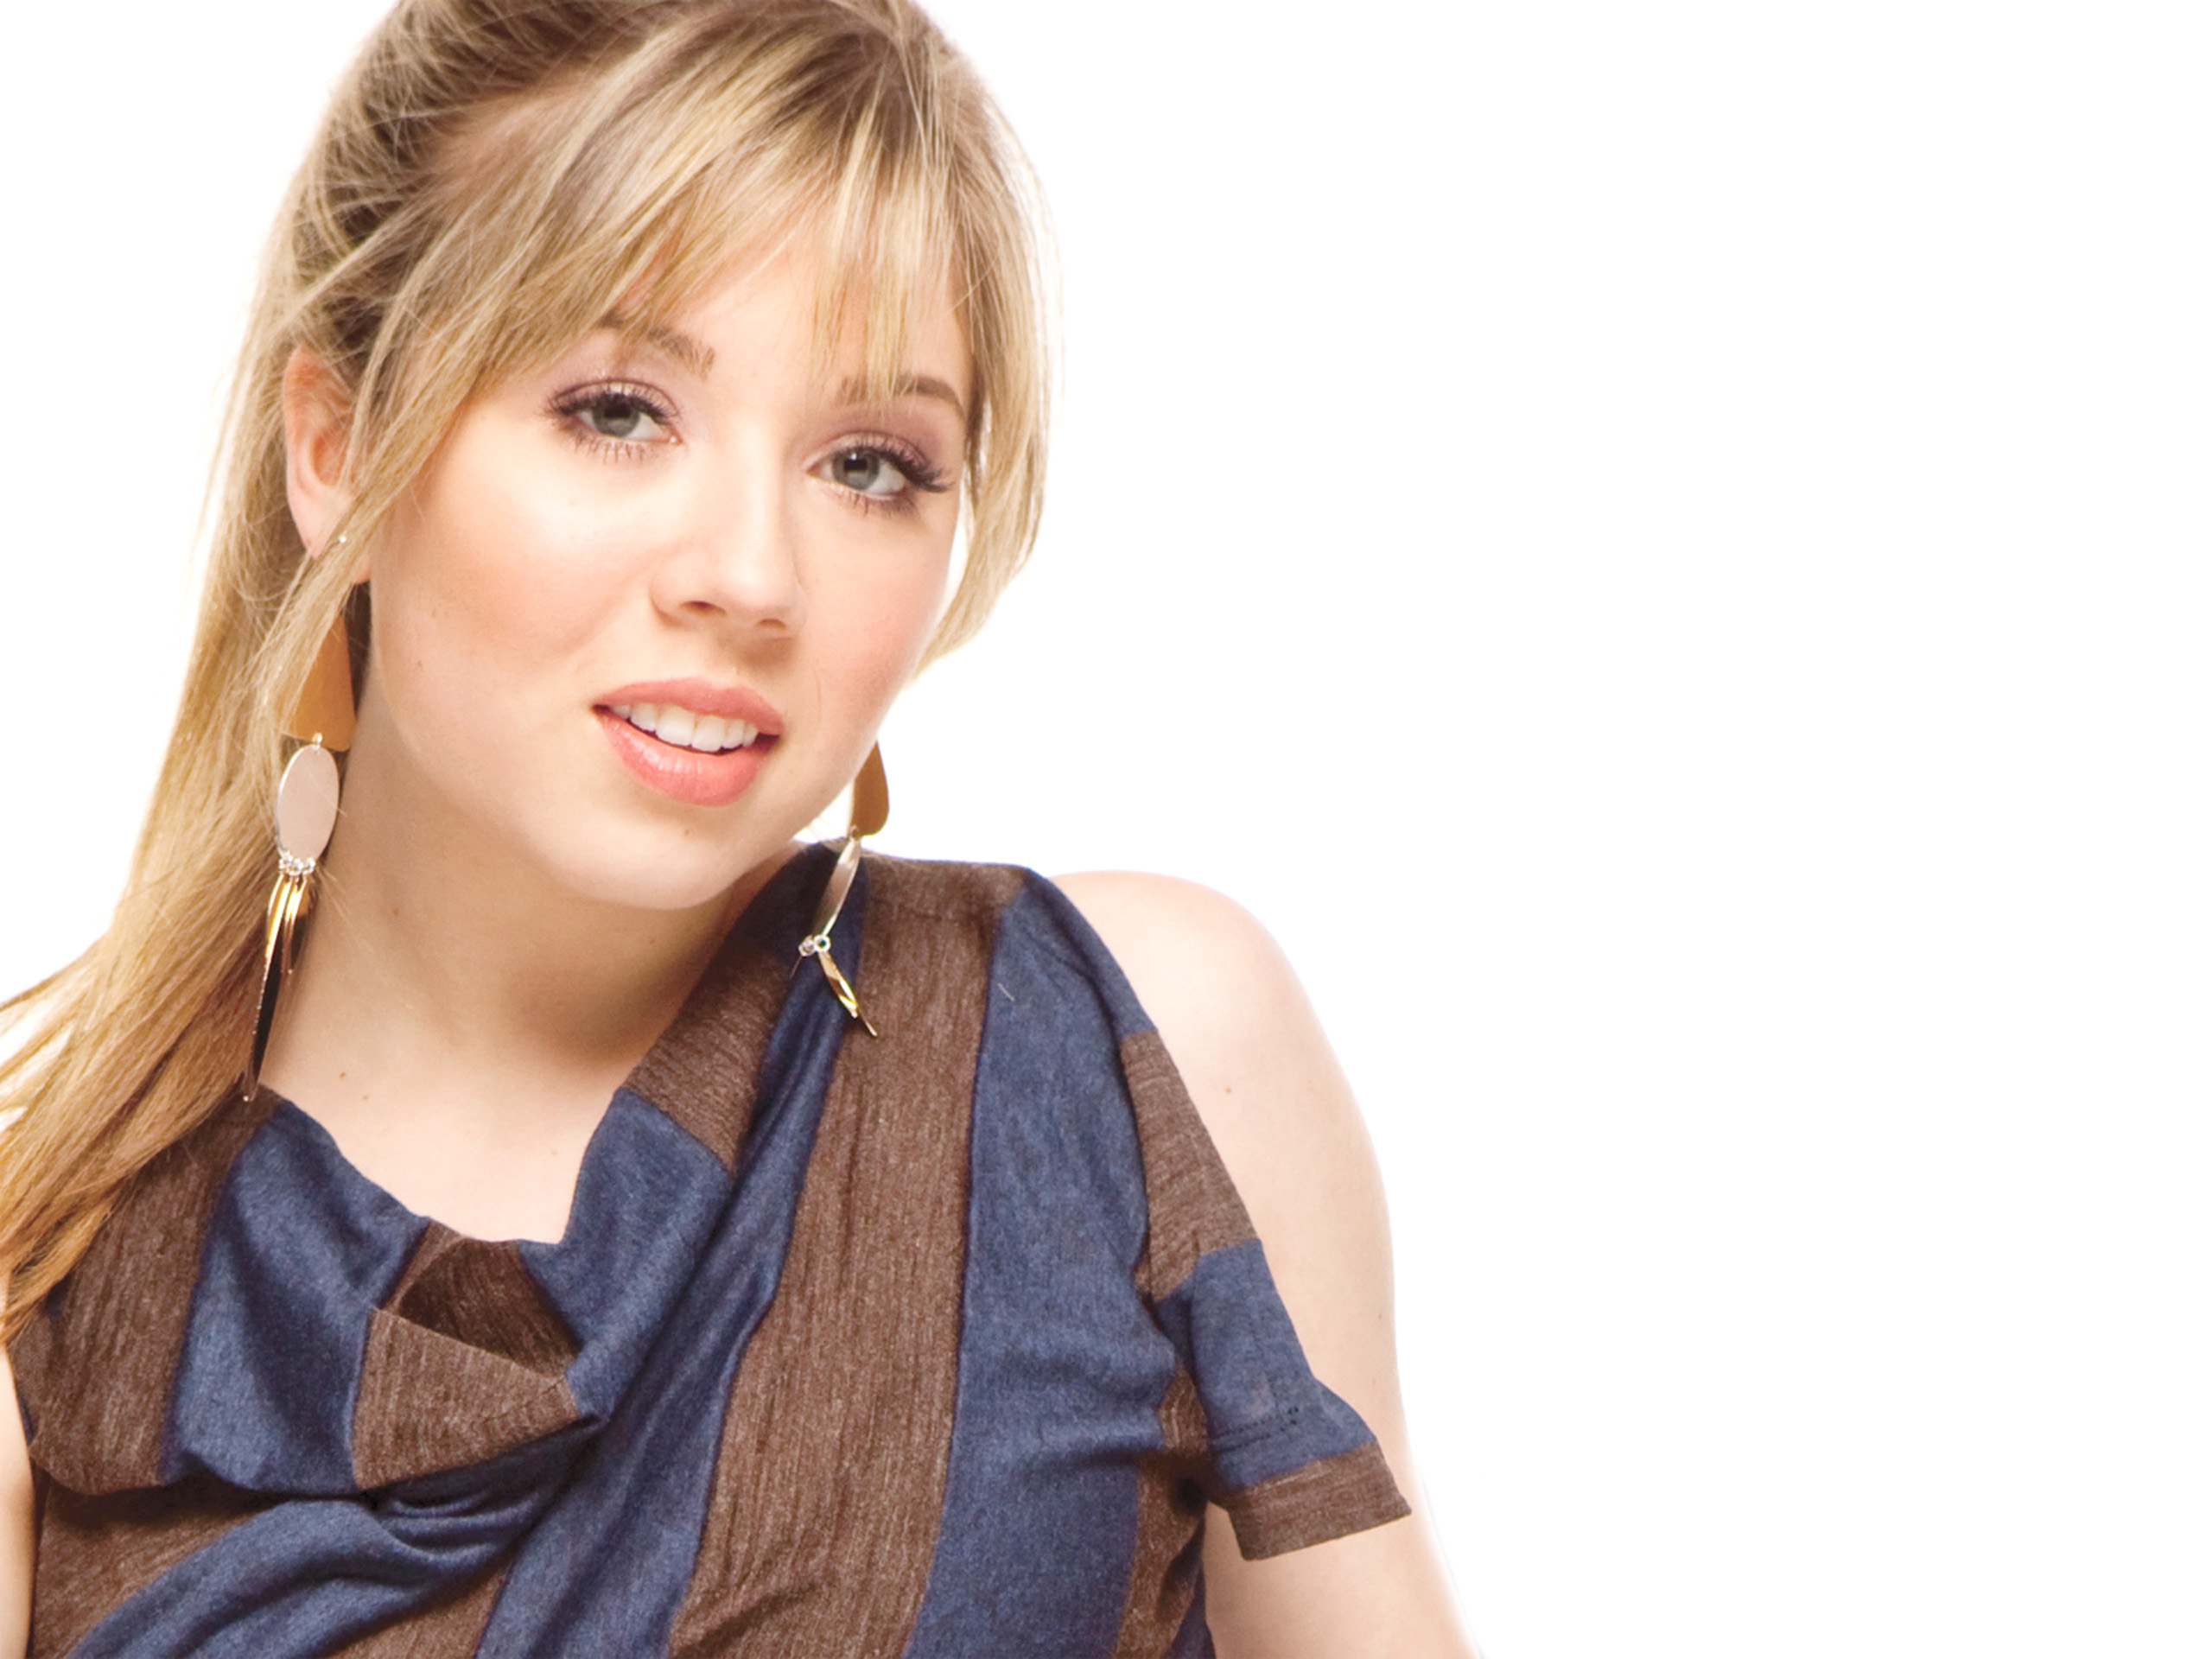 2560x1920 - Jennette McCurdy Wallpapers 20